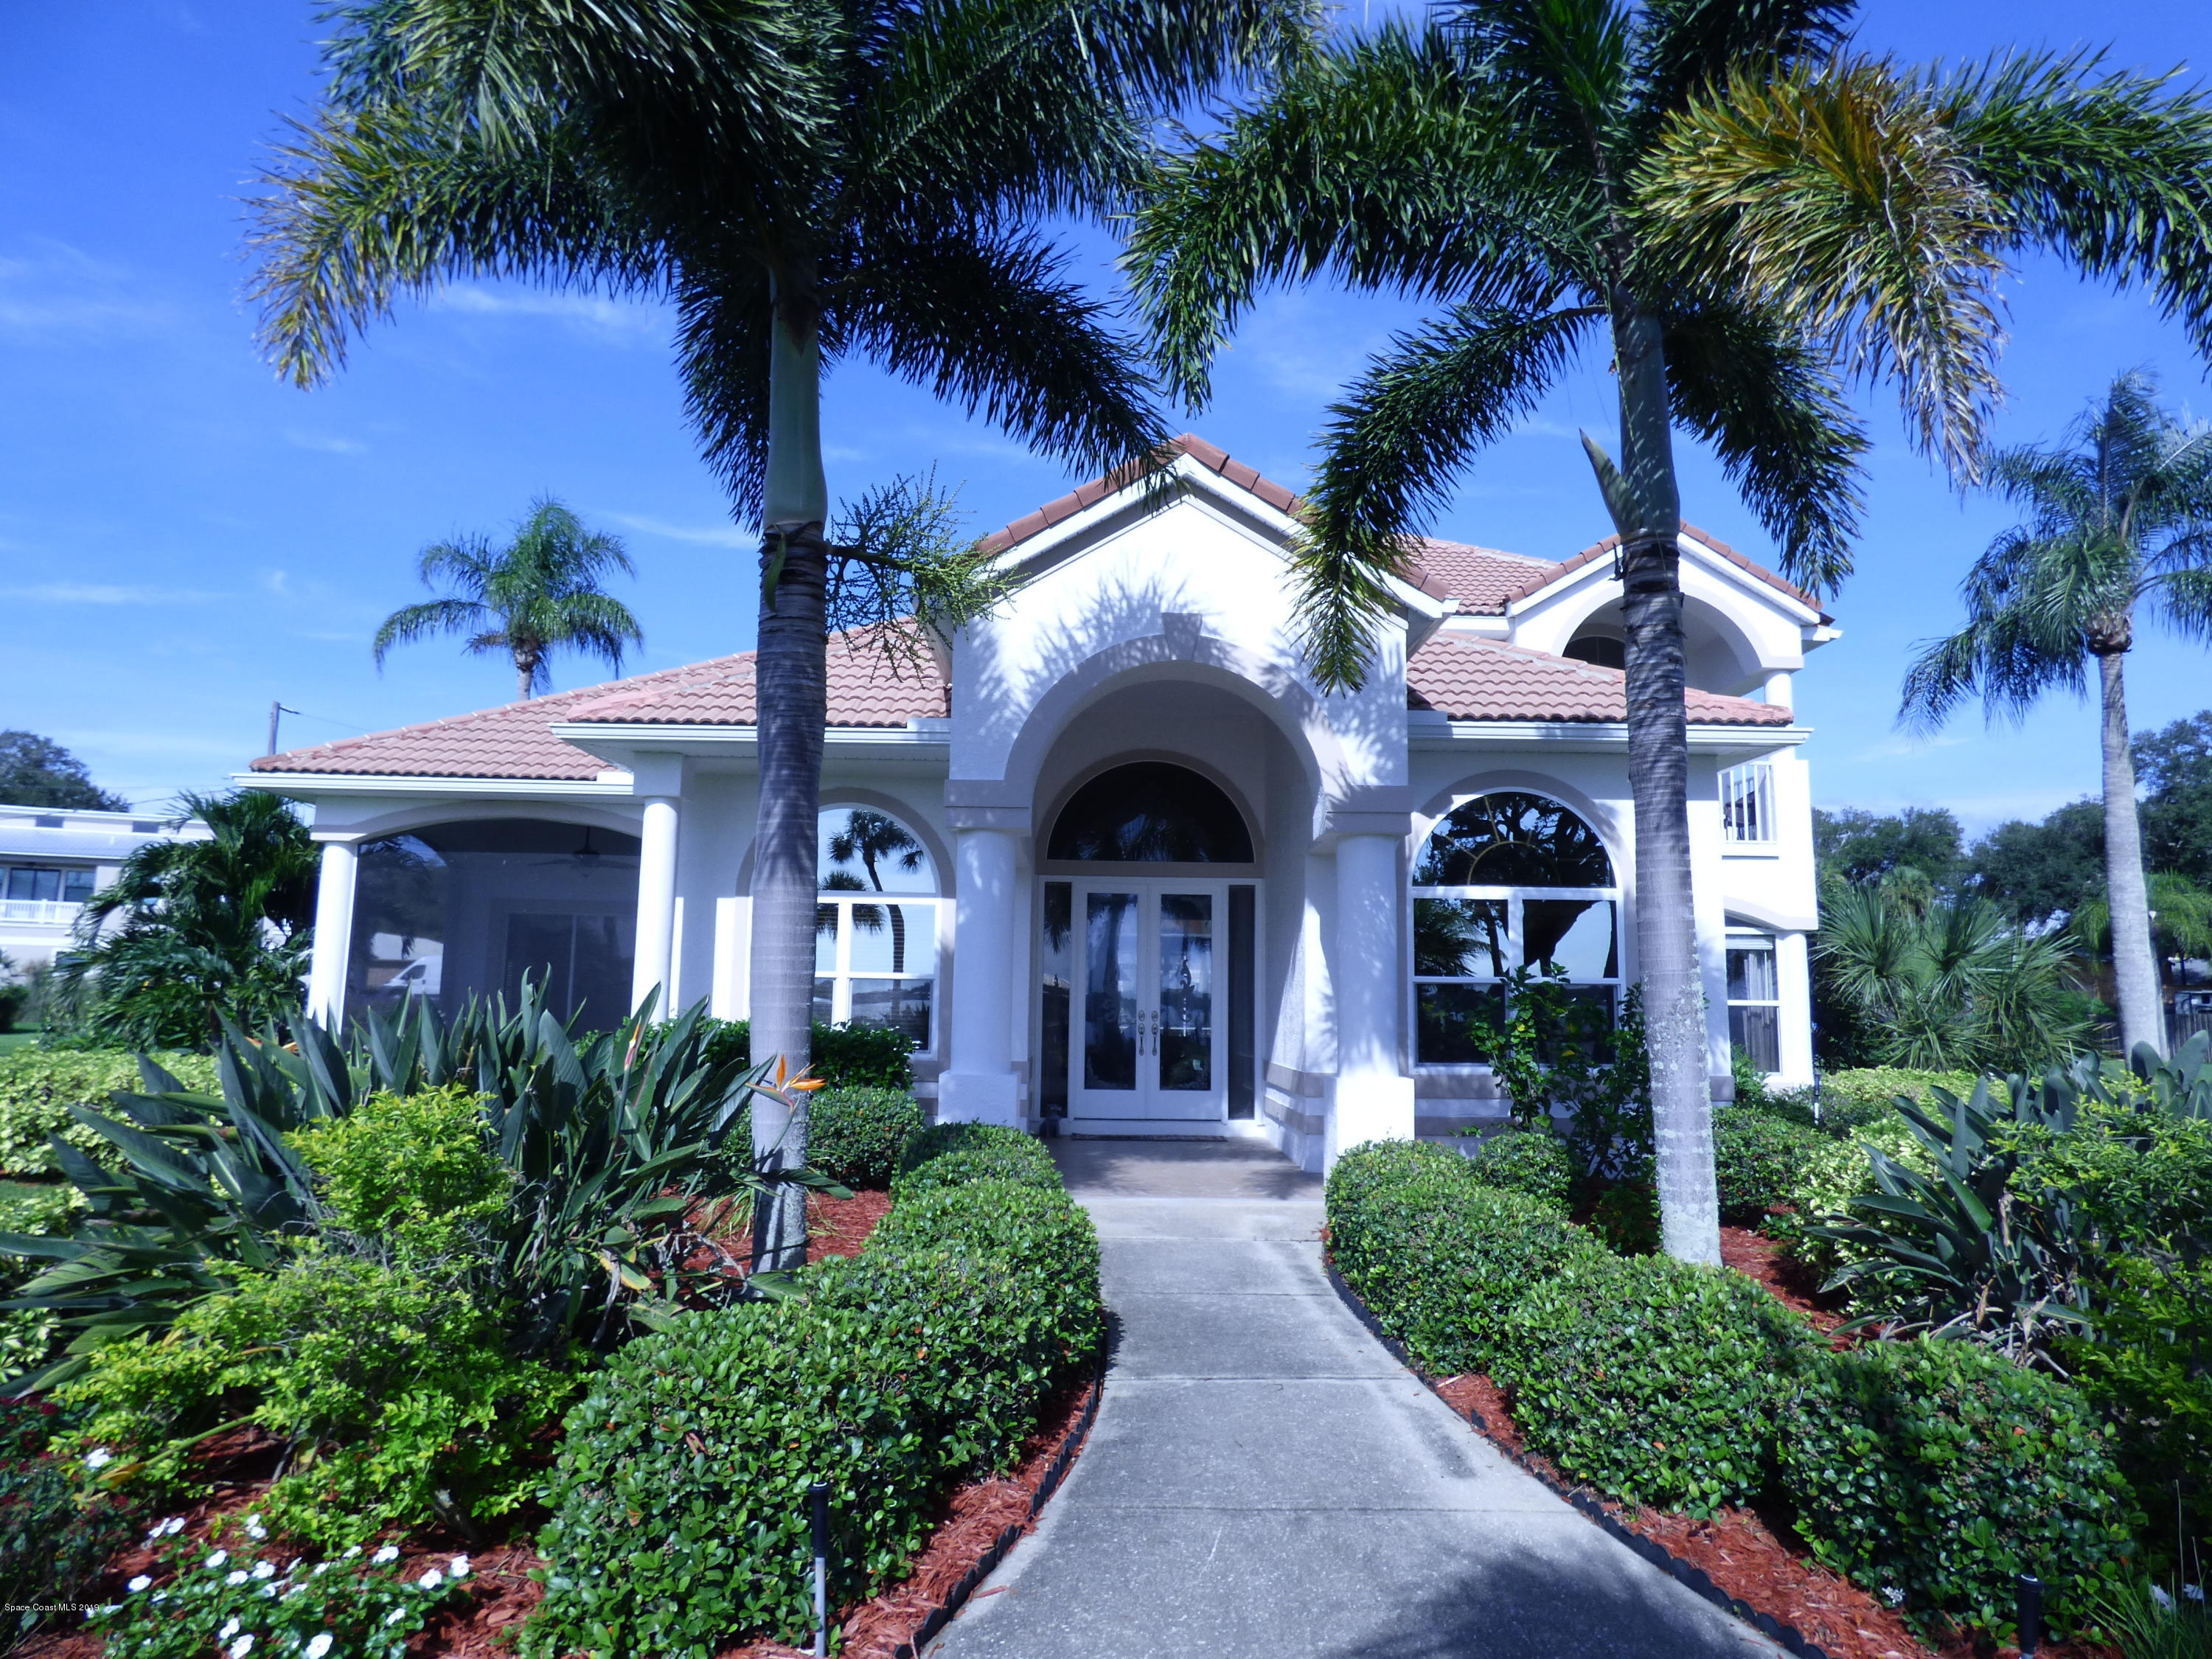 Single Family Homes for Sale at 2089 Rockledge Rockledge, Florida 32955 United States